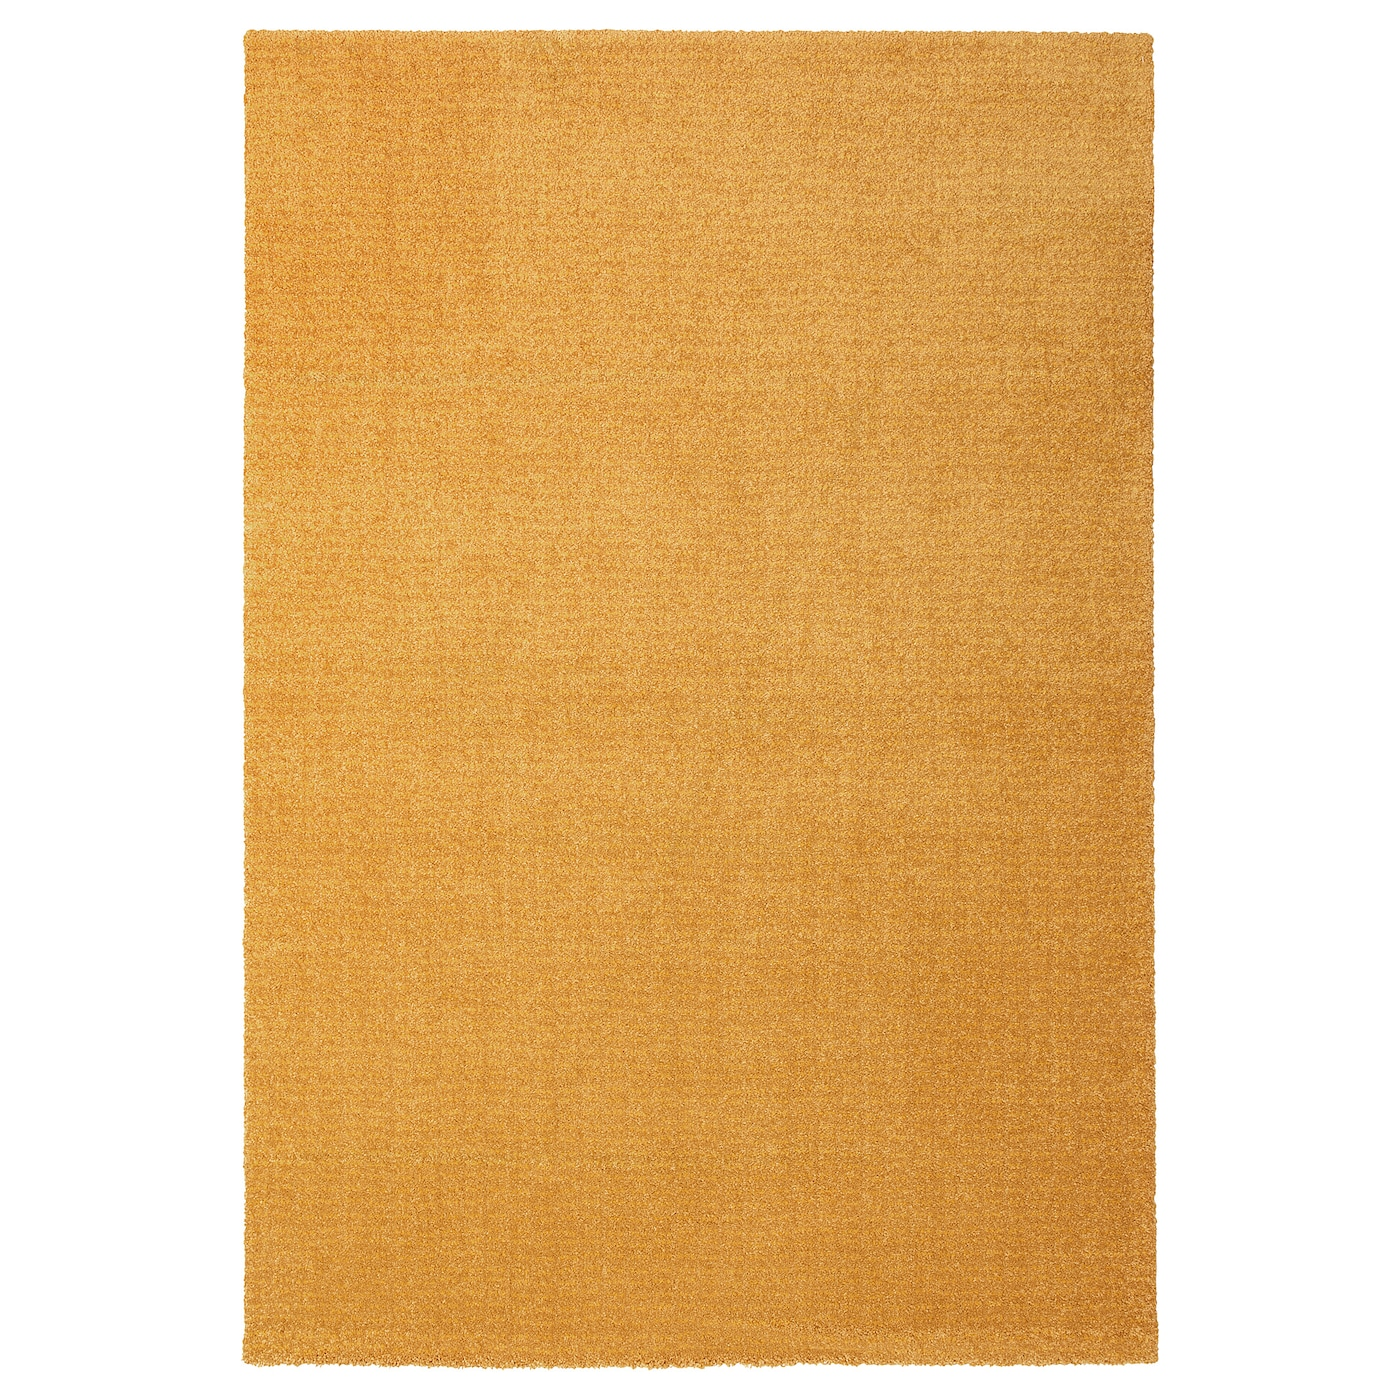 IKEA LANGSTED tapis, poils ras